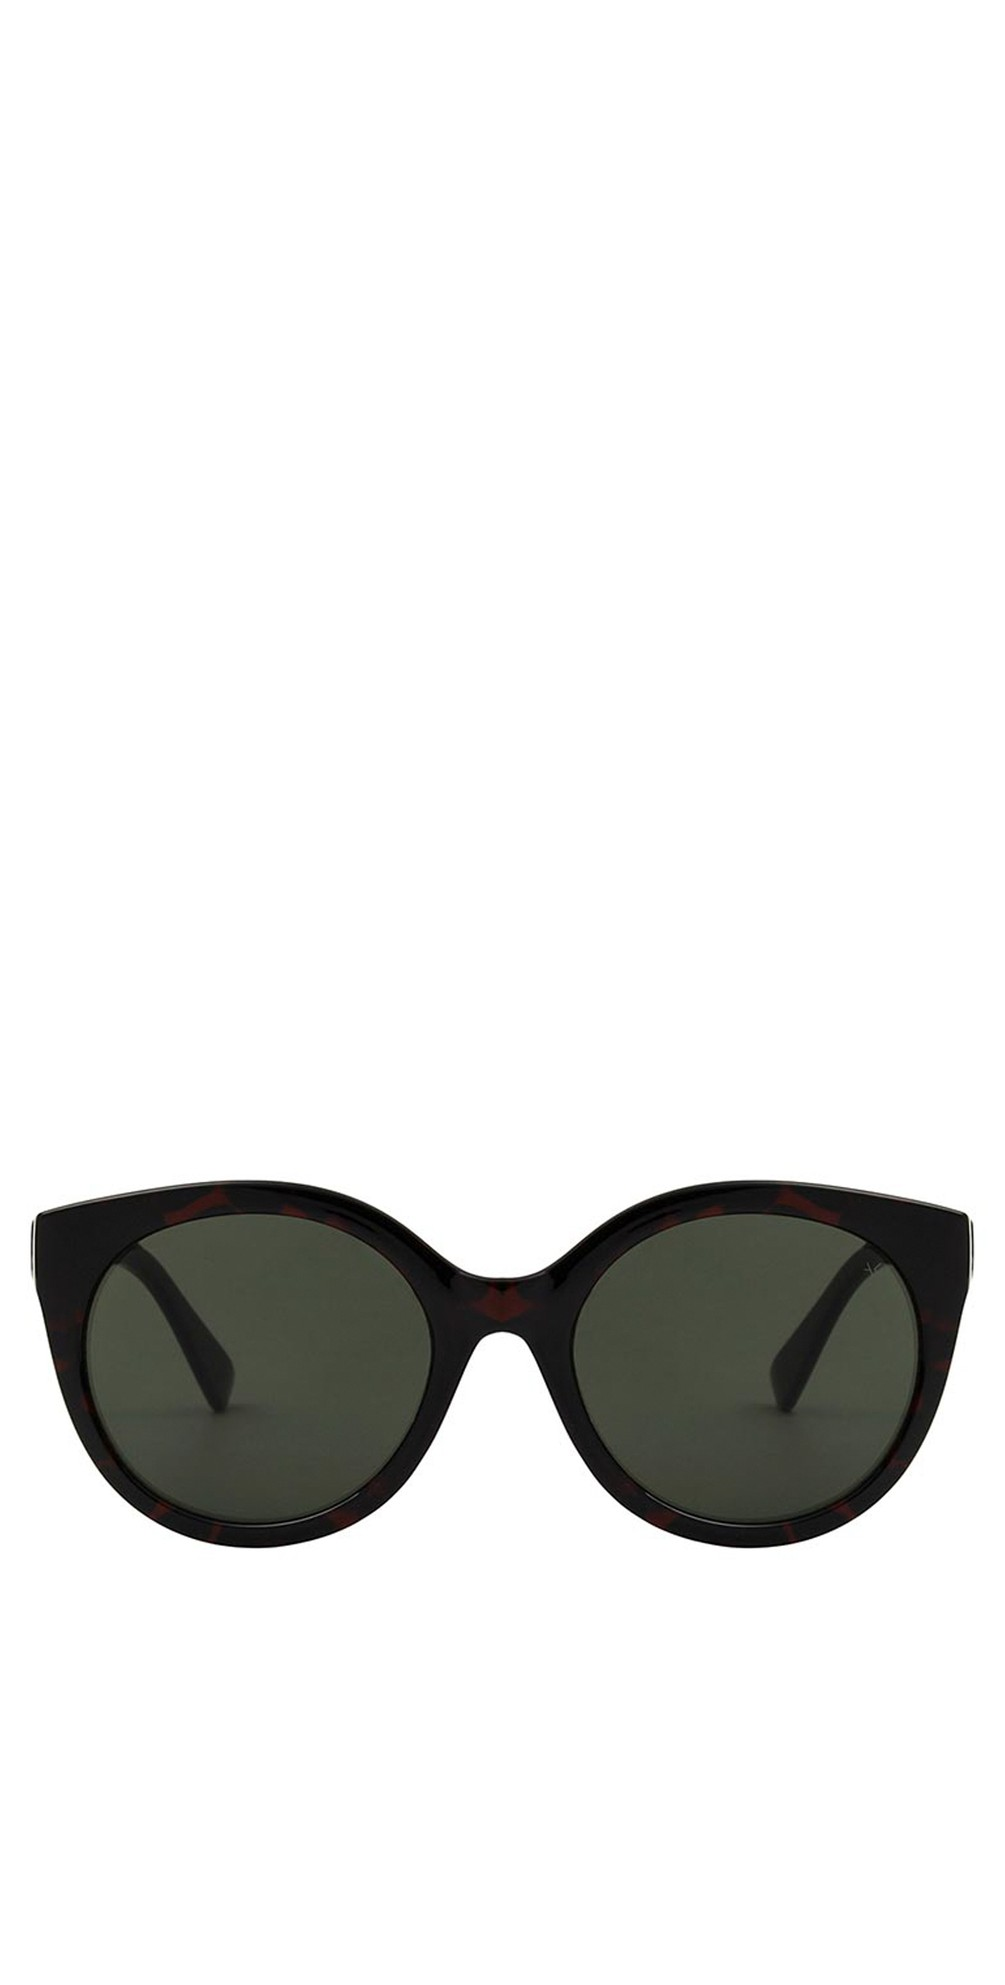 Butterfly Sunglasses main image